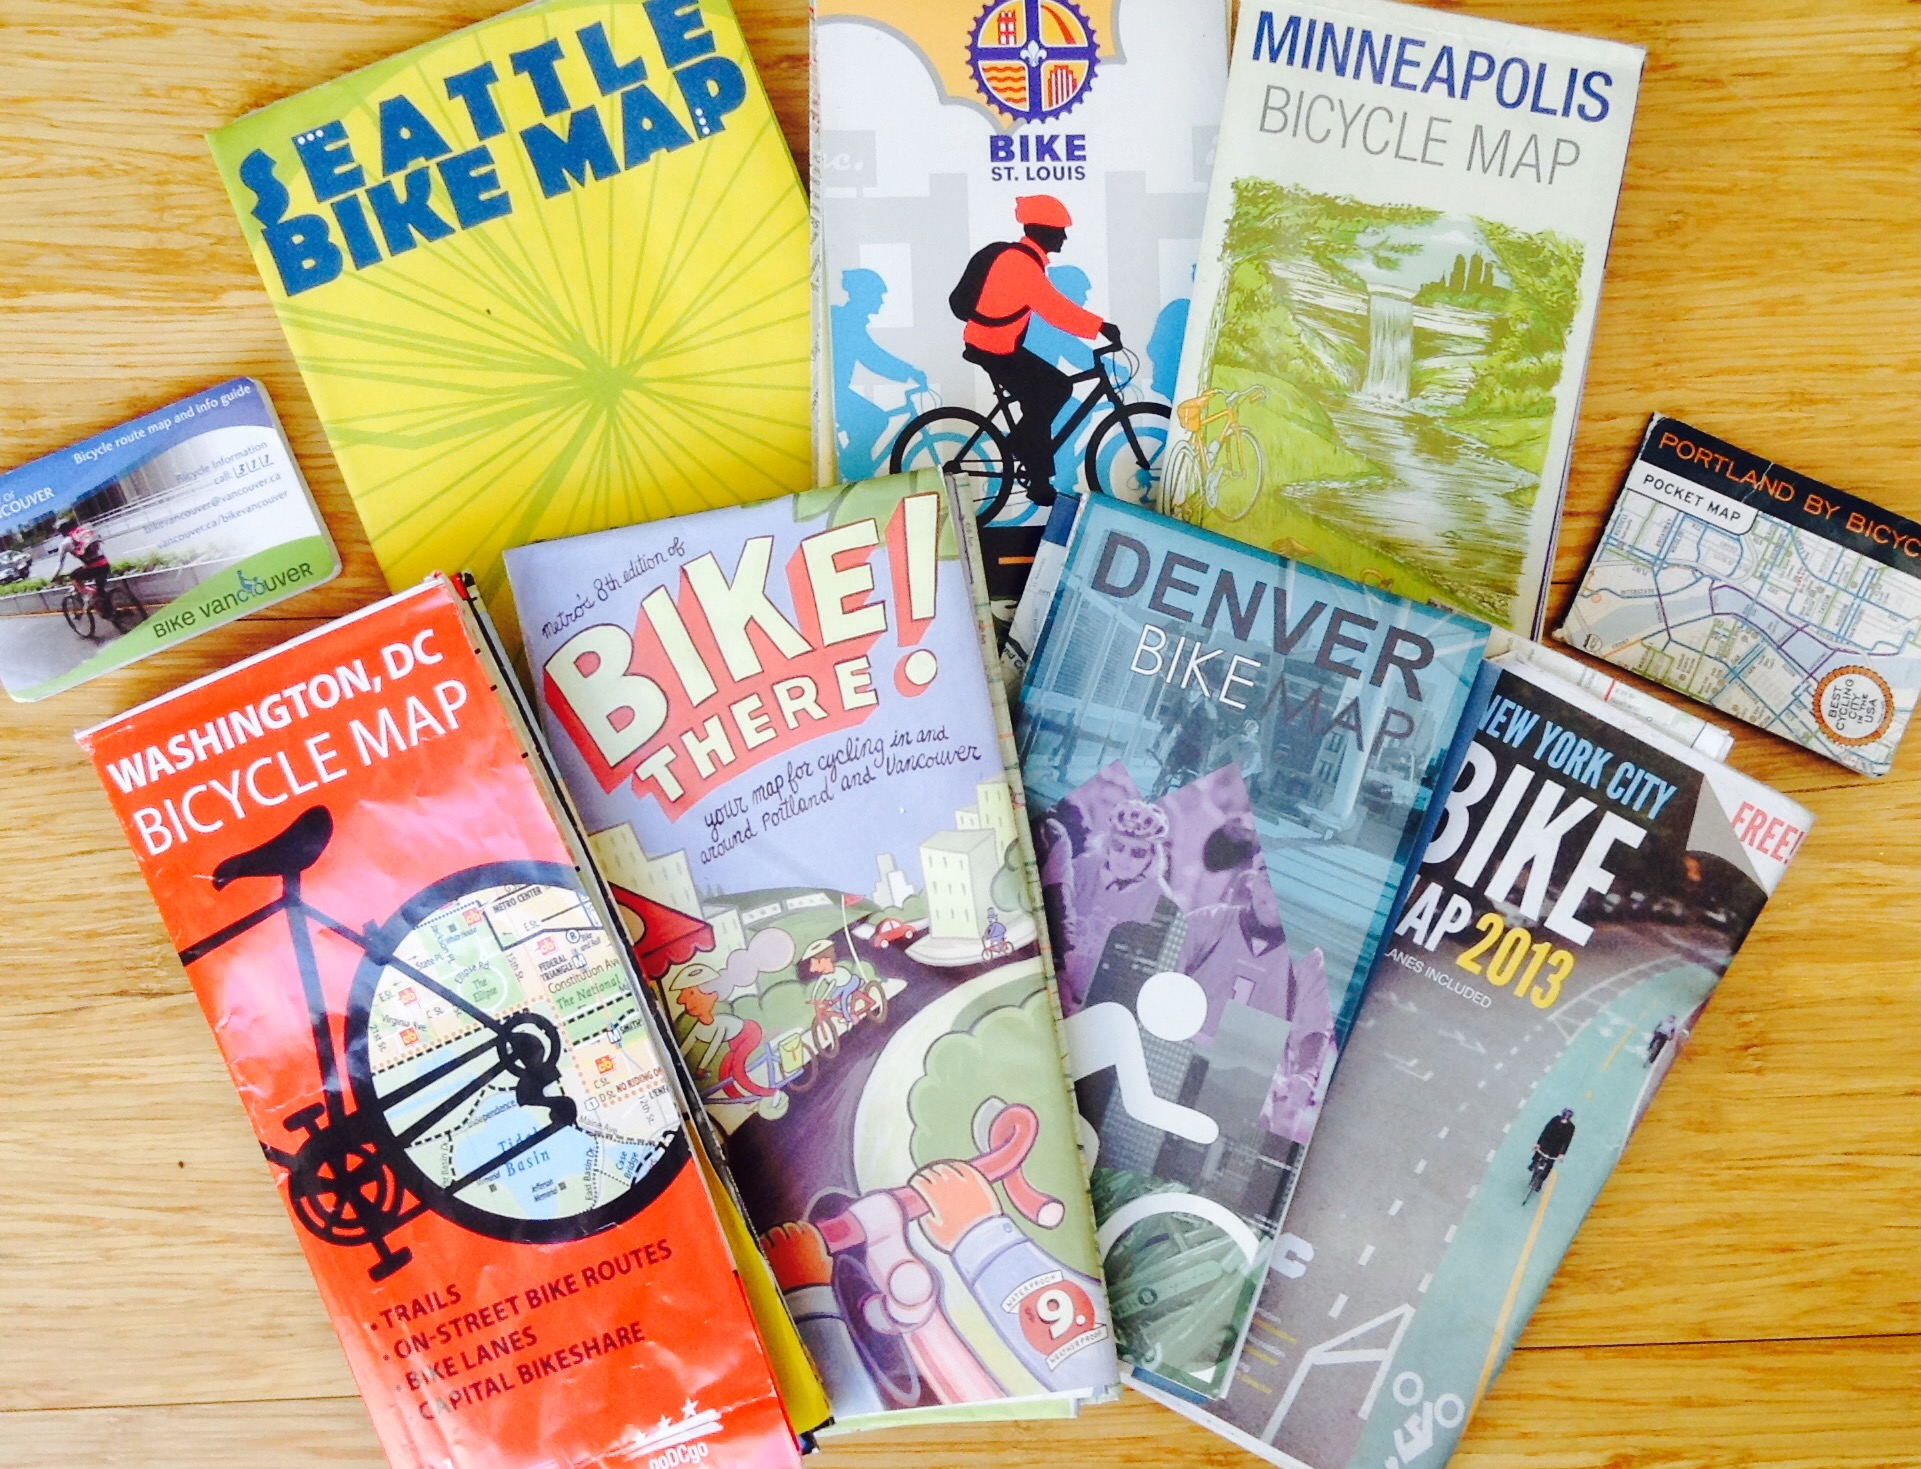 Your city's bike department will mail you oodles of the local bike map for free, simply by requesting them.